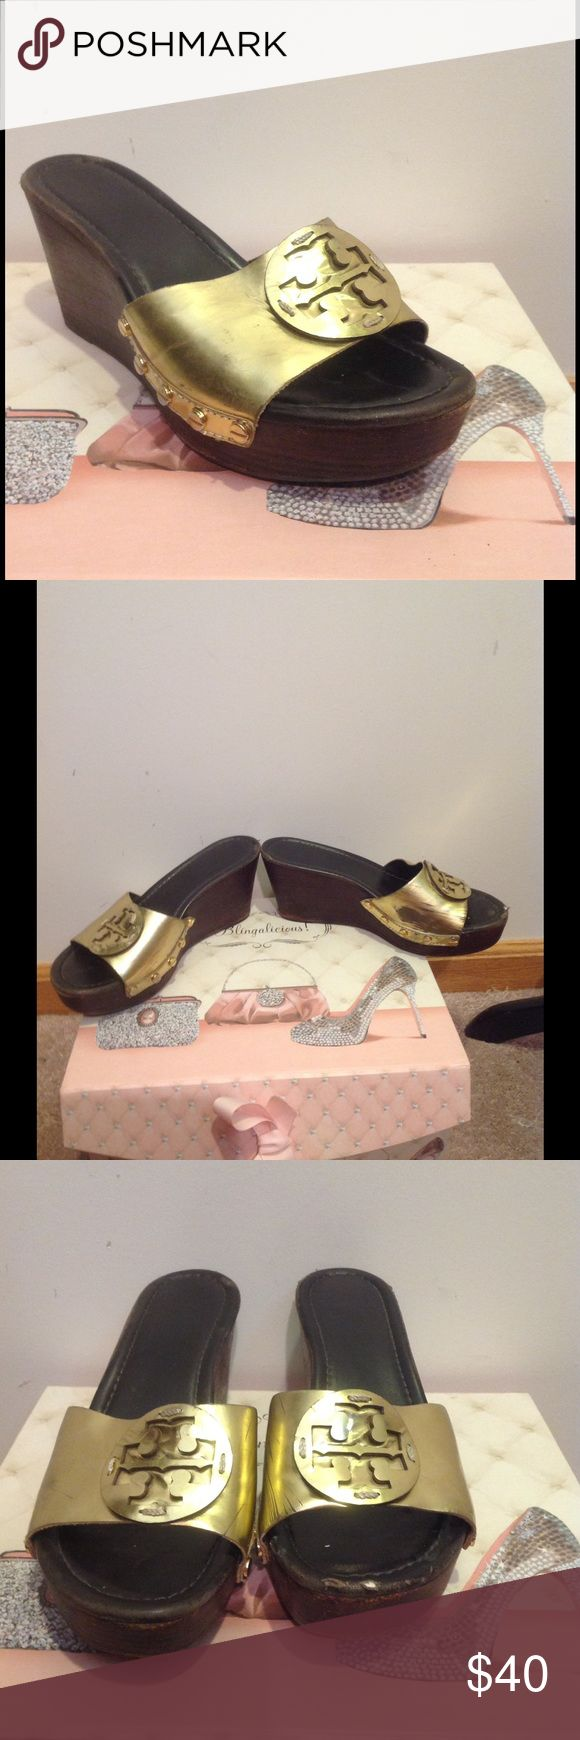 Tory Burch Gold Sandal Heels Wear shown in all pictures Tory Burch Shoes Sandals